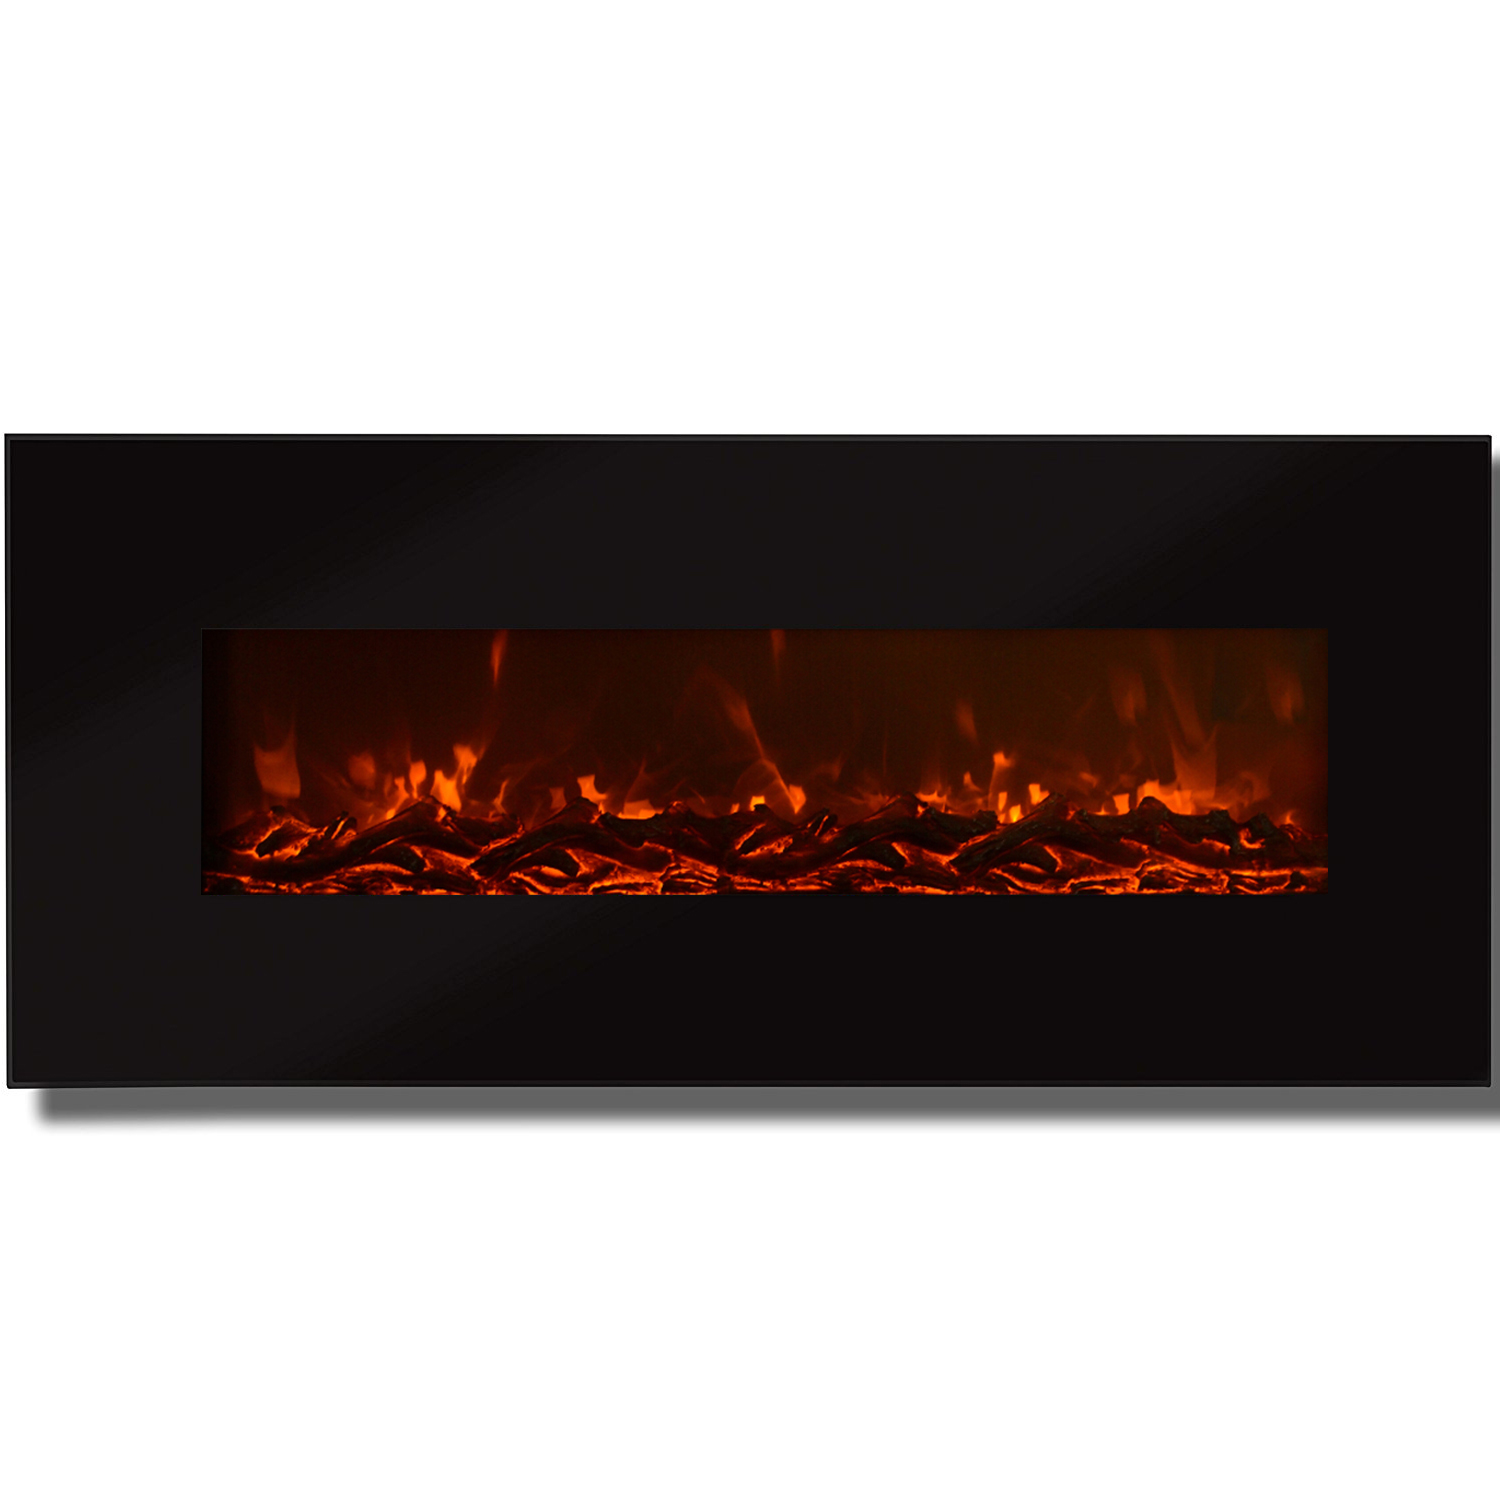 Regal Led Tv 32 Inch Regal Flame Valencia 50 Inch Black Ventless Heater Electric Wall Mounted Fireplace Log